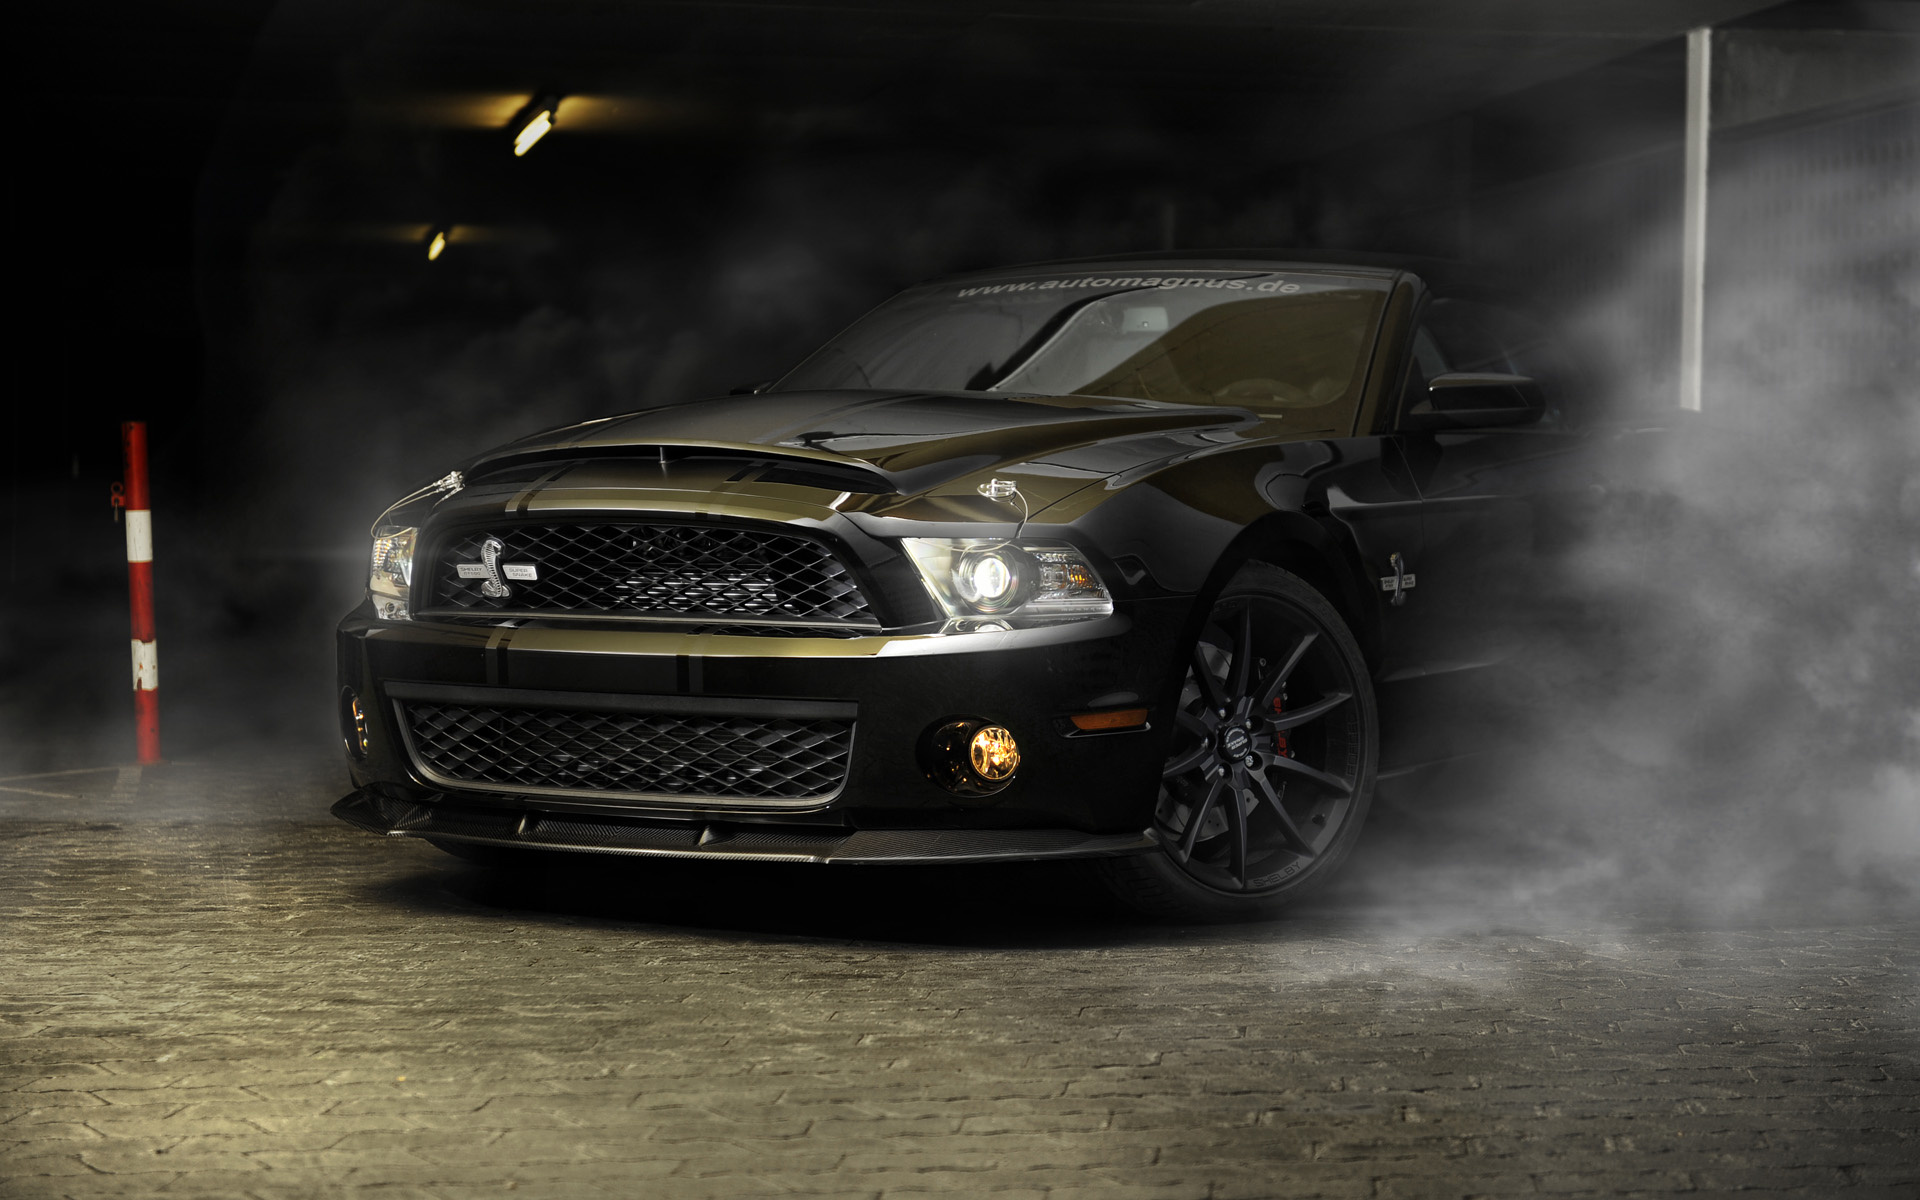 ford Mustang Gt500 Super Snake Vehicles Cars Auto Smoke 1920x1200